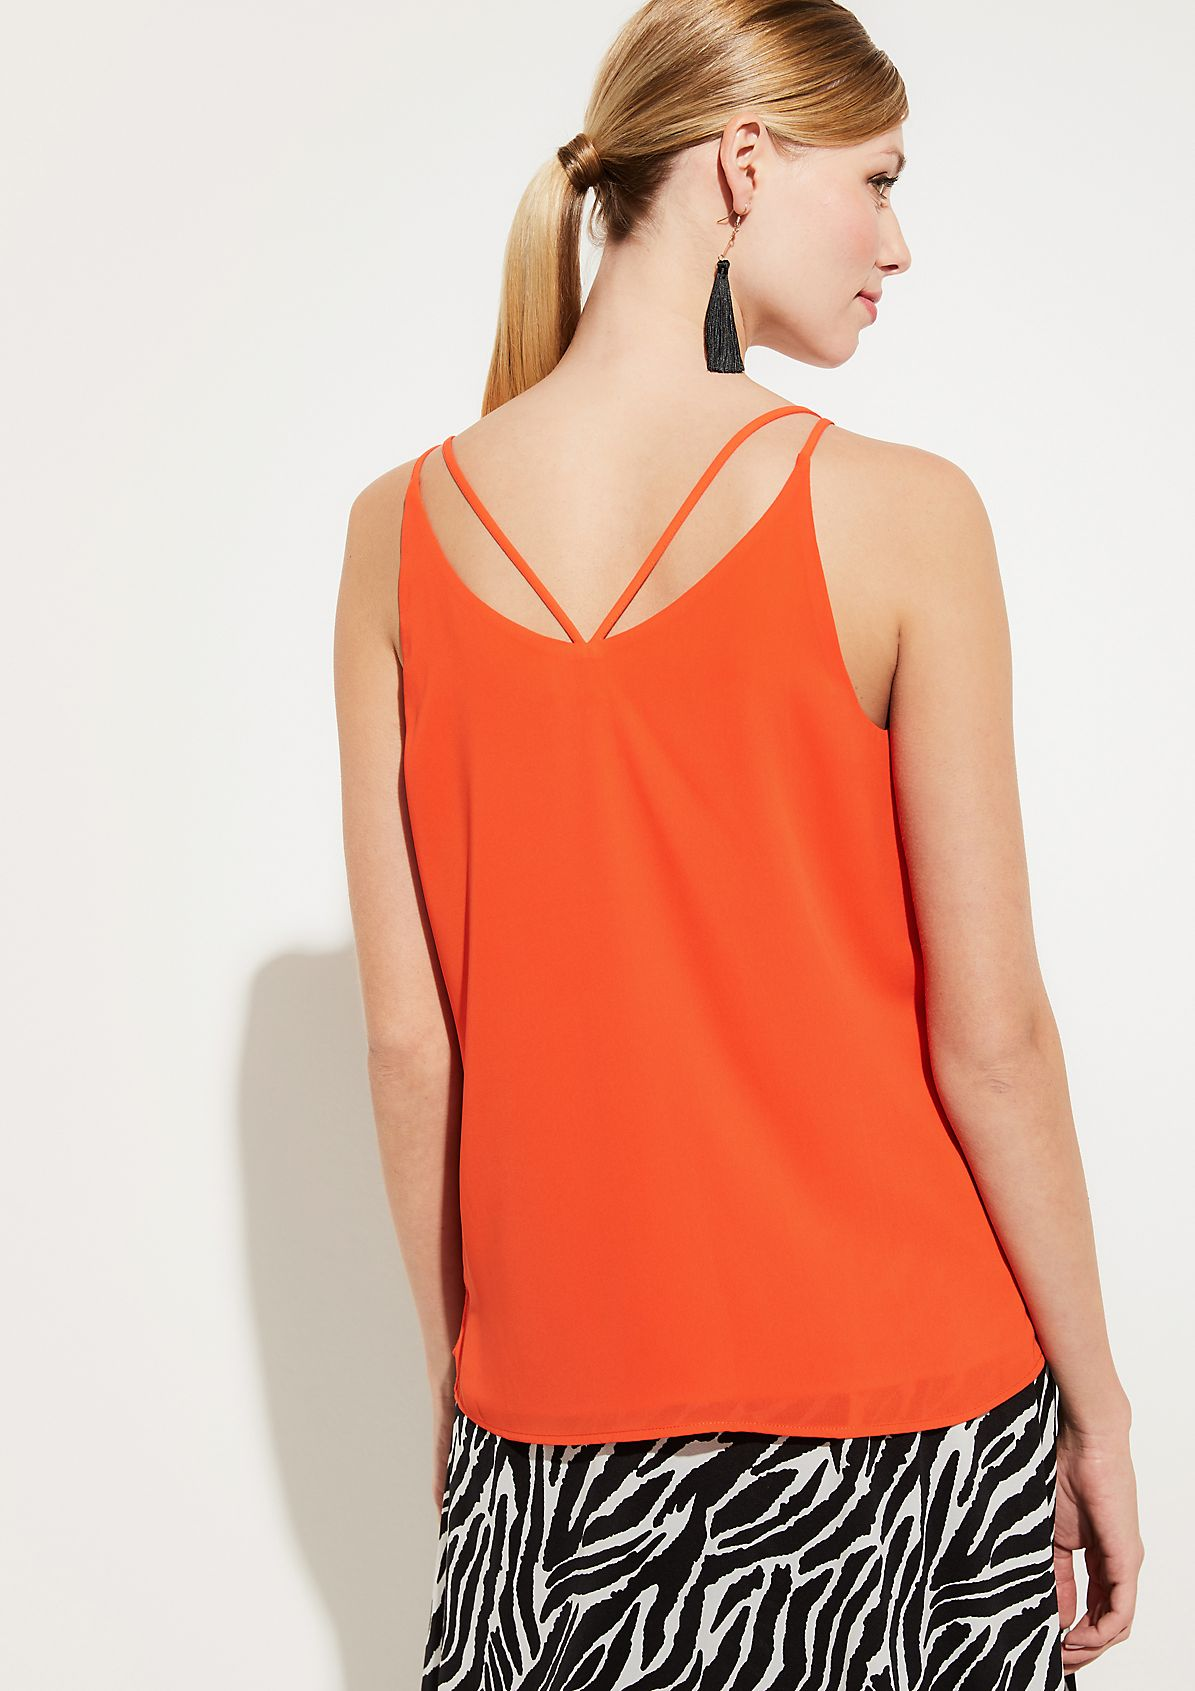 Blouse top with spaghetti straps from comma